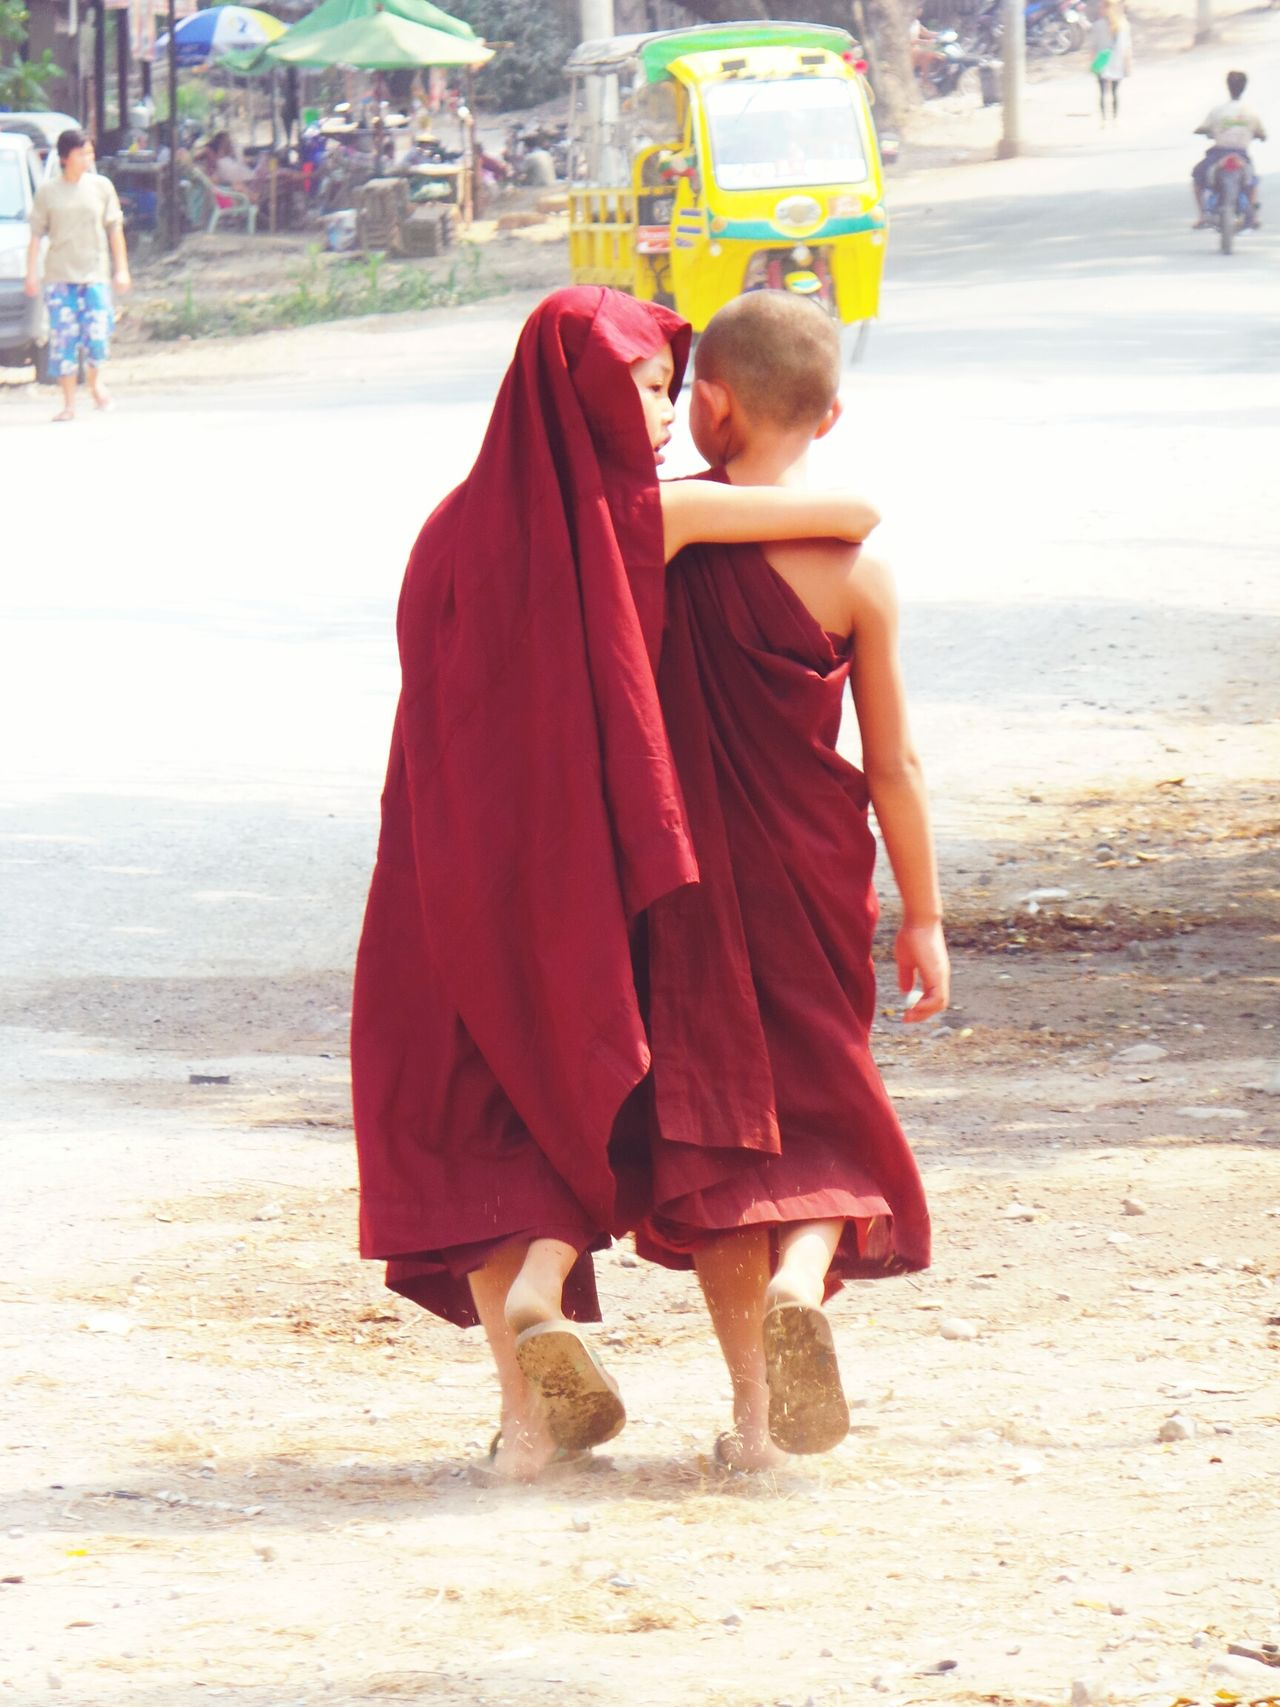 Friends. Full Length Lifestyles Street Rear View Togetherness Novice Monks Novice Monk Going For A Walk Going To School Budhhist Monk Buddhism Friendship Friends Supportive Myanmmar